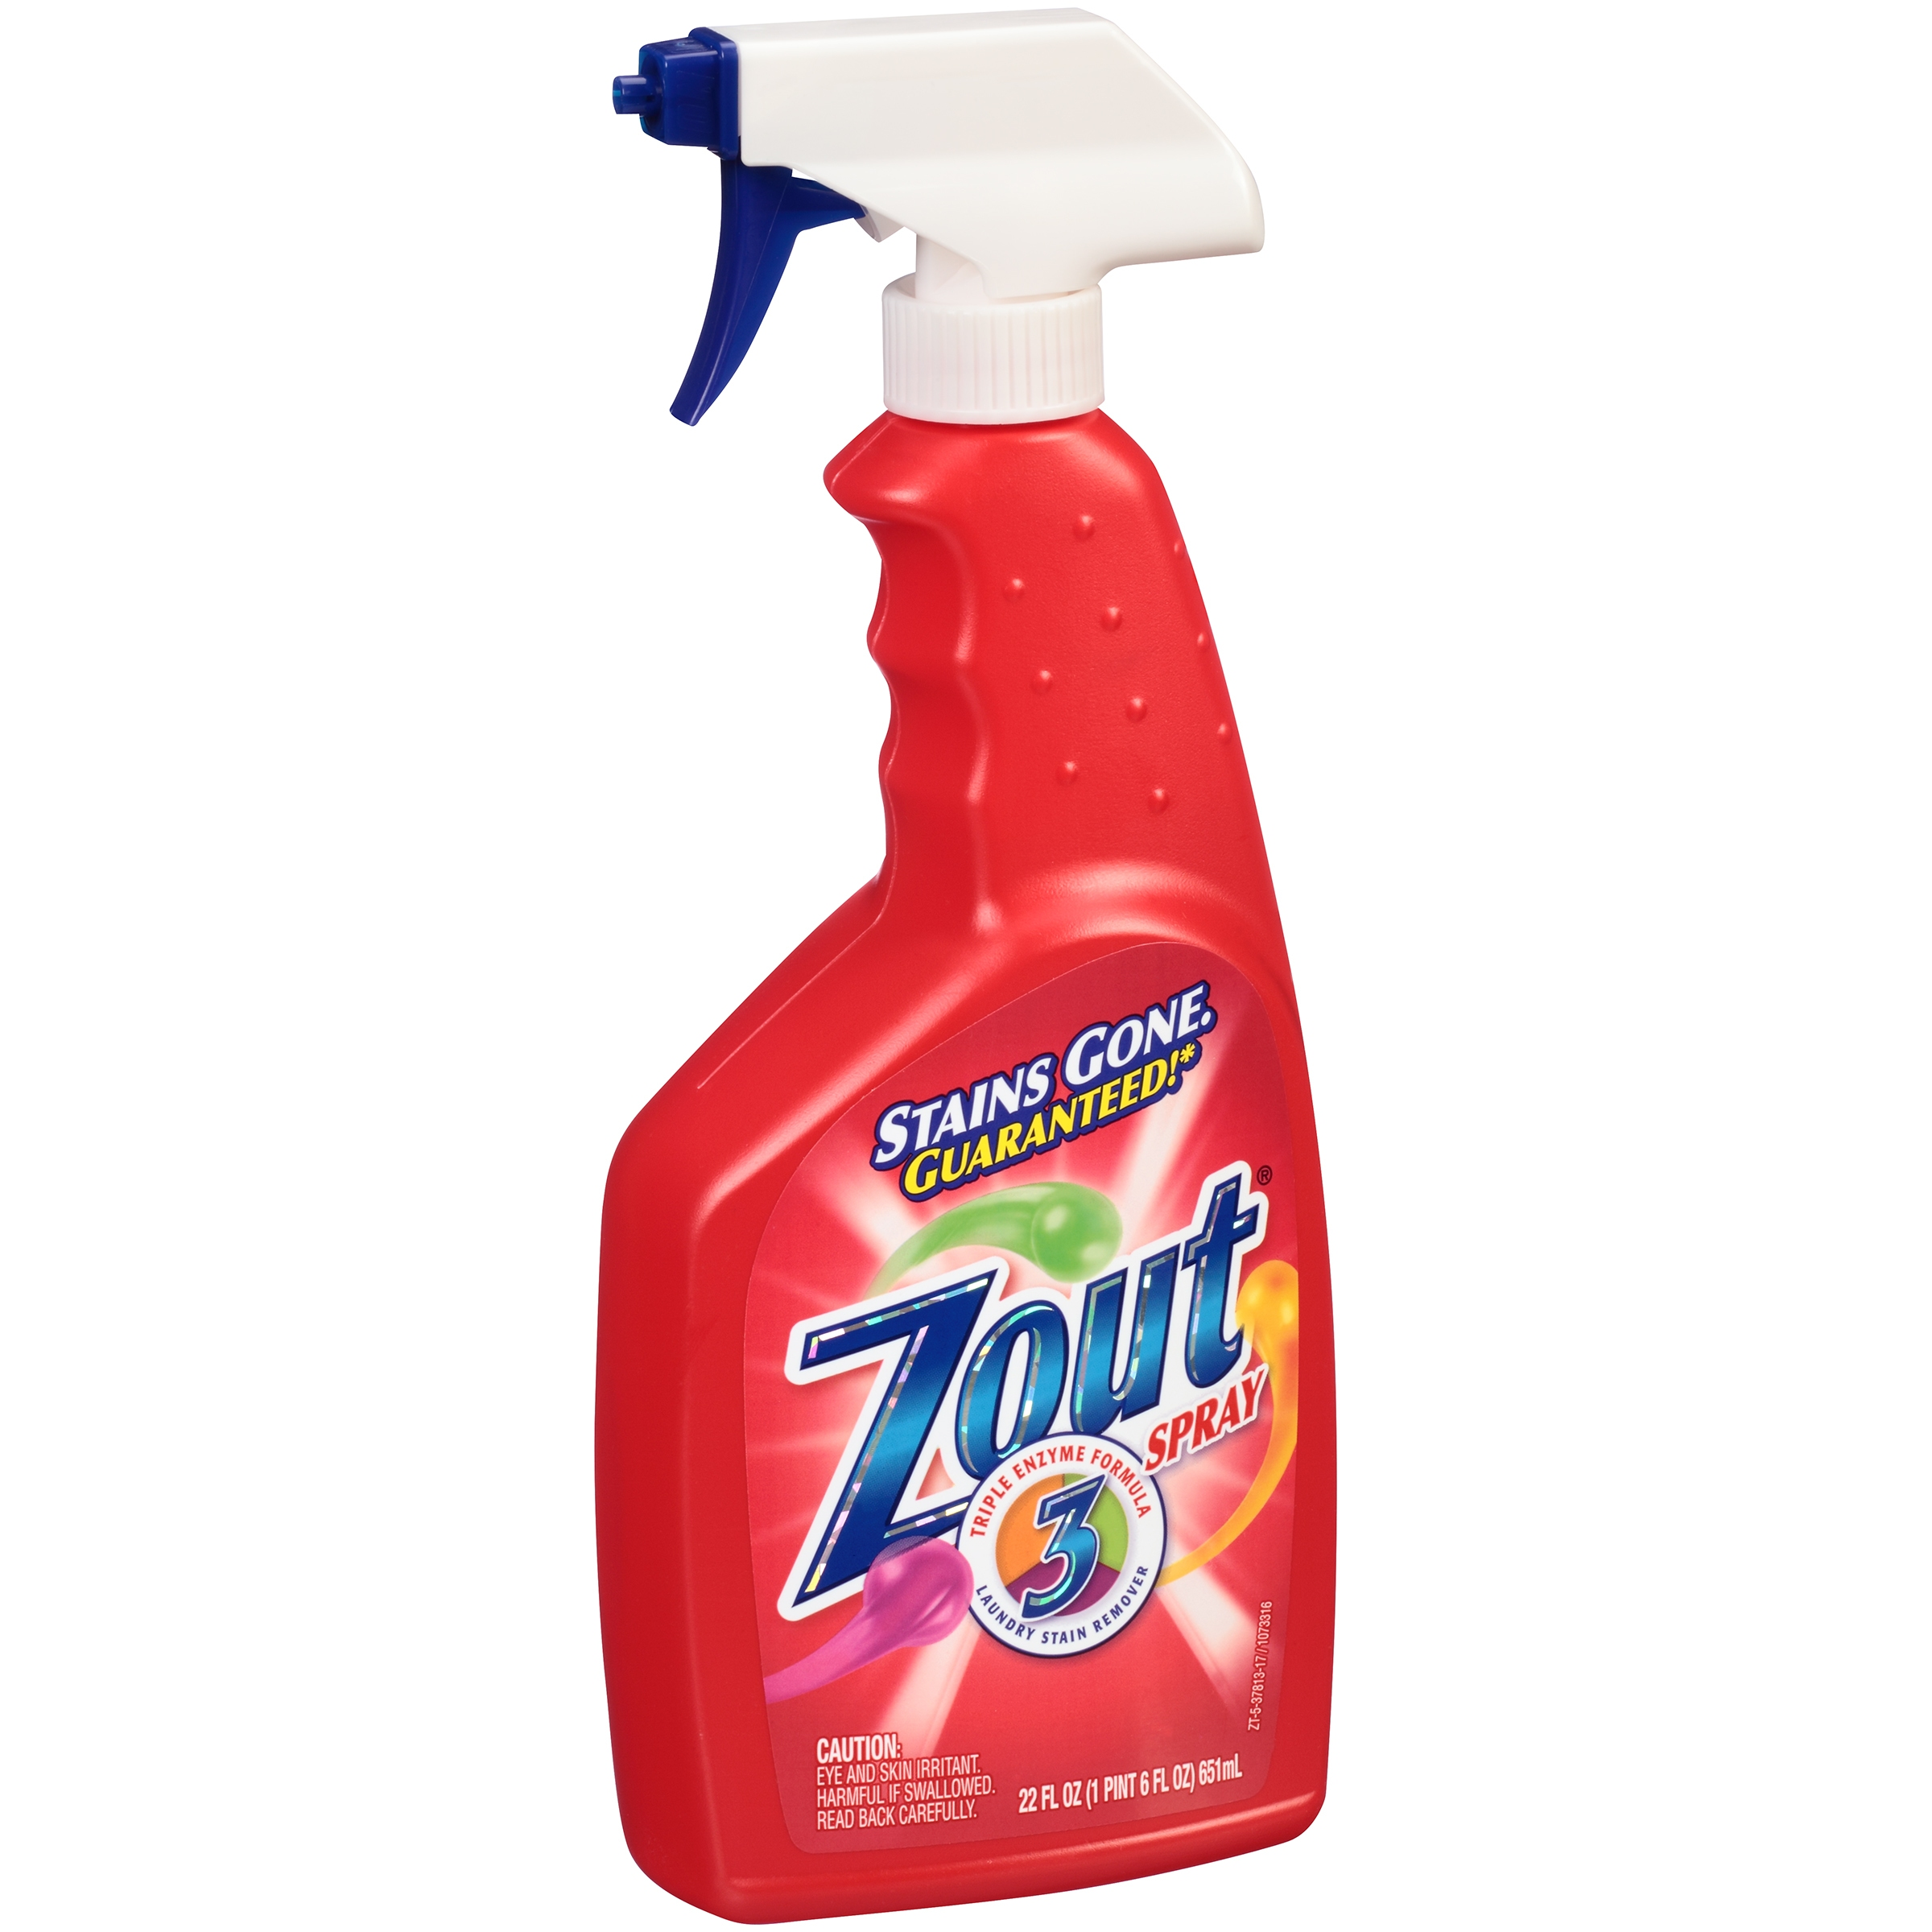 Zout® Triple Enzyme Formula Laundry Stain Remover Spray 22 fl. oz. Bottle